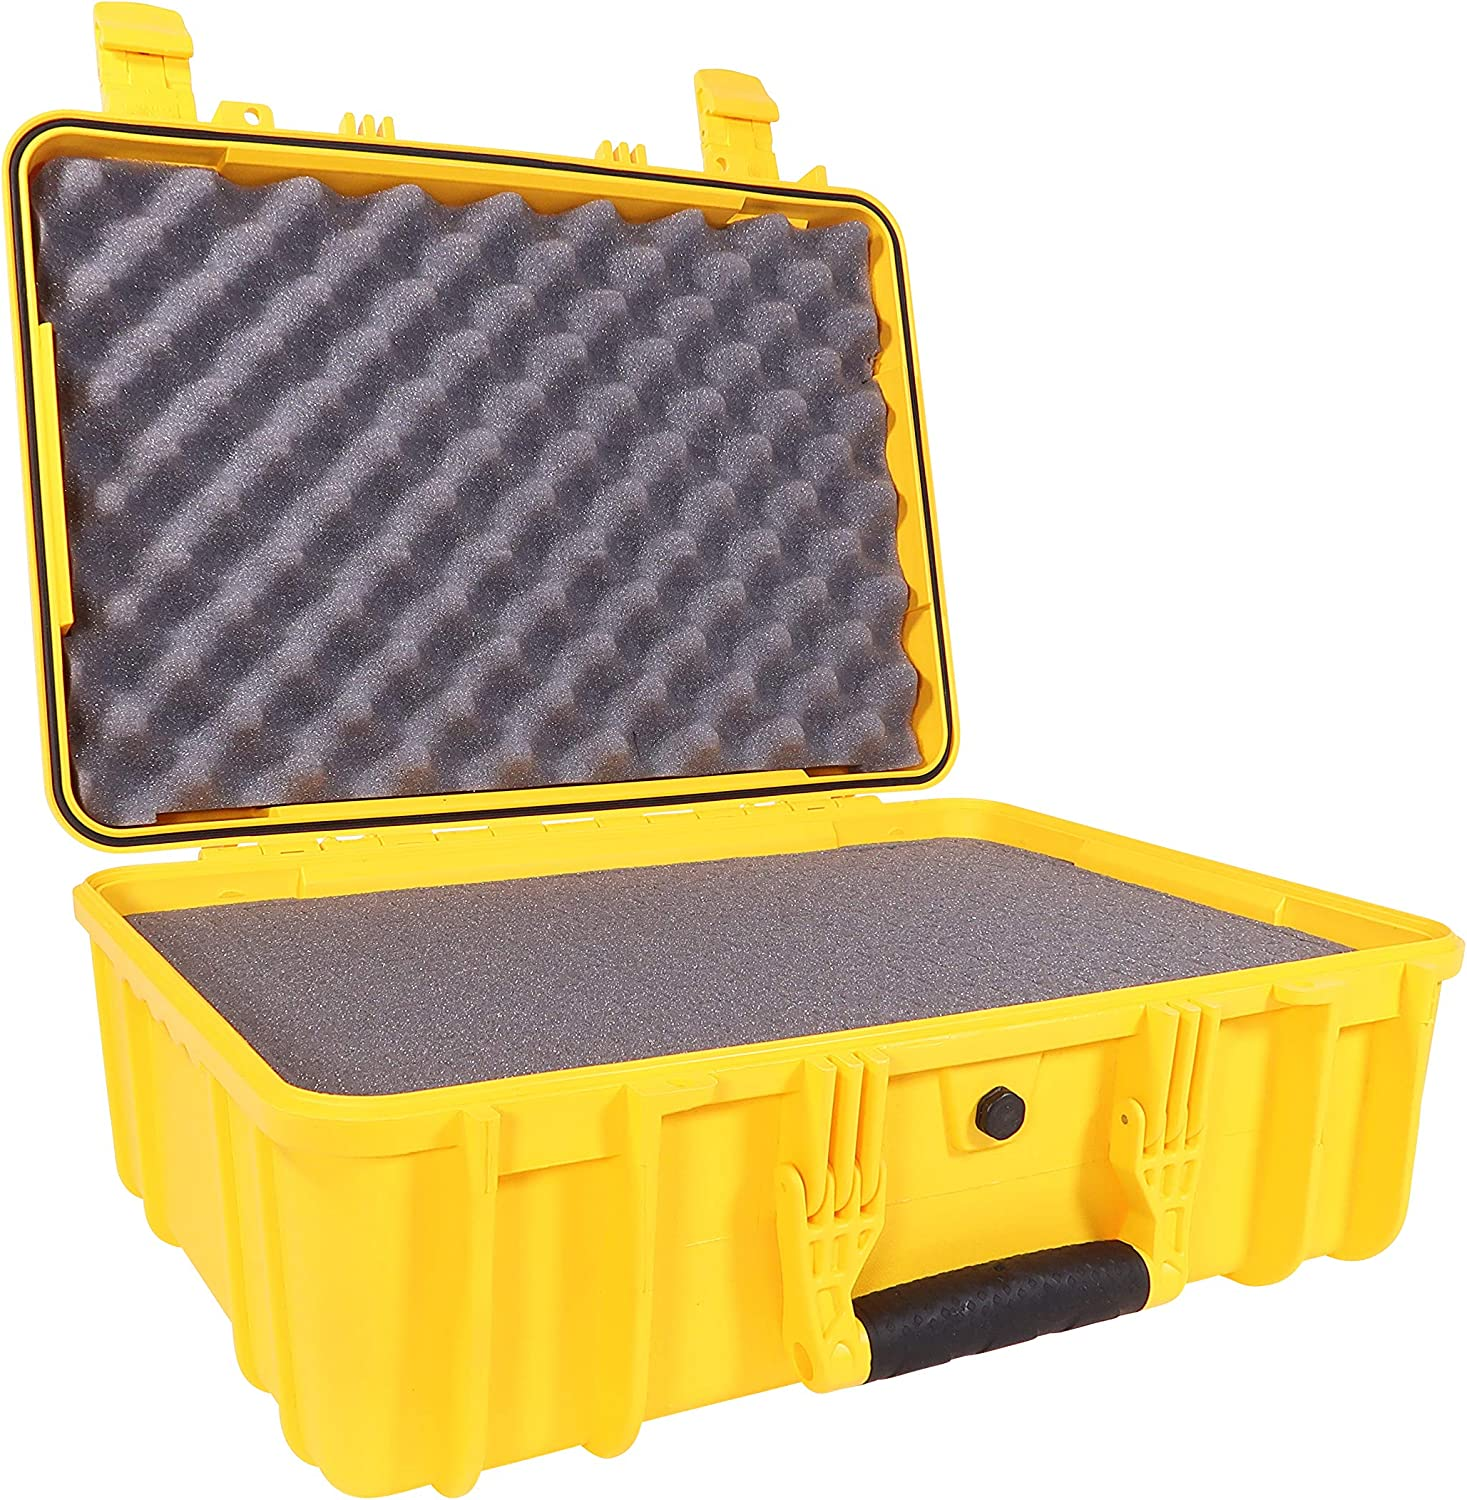 """Condition 1 18"""" Medium Waterproof Protective Hard Case with Foam, Yellow - 18"""" x 14"""" x 7"""" #801 Watertight IP67 Rated Dust Proof and Shock Proof TSA Approved Portable Trunk Carrier"""